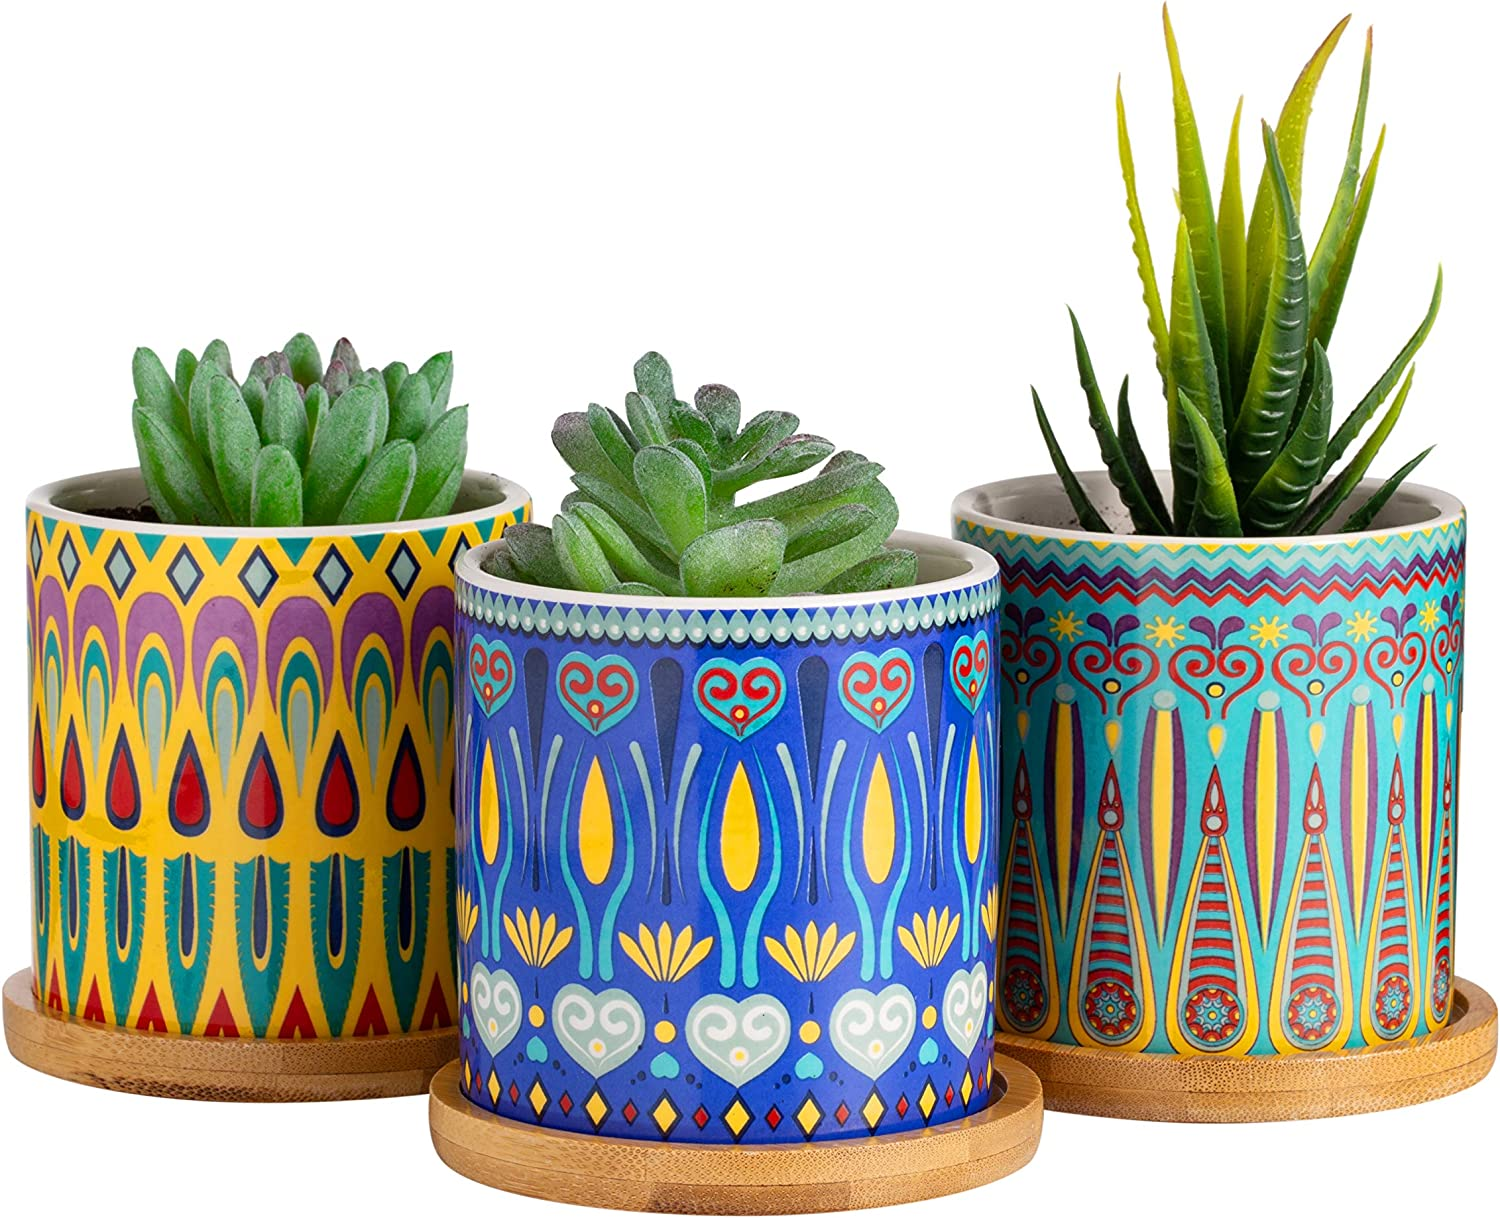 Dsben 3.5 Inch Succulent Plant Pots, Small Mandala Style Flower Ceramic Planter Indoor with Bamboo Tray for Cactus, Herbs, Home, Set of 3